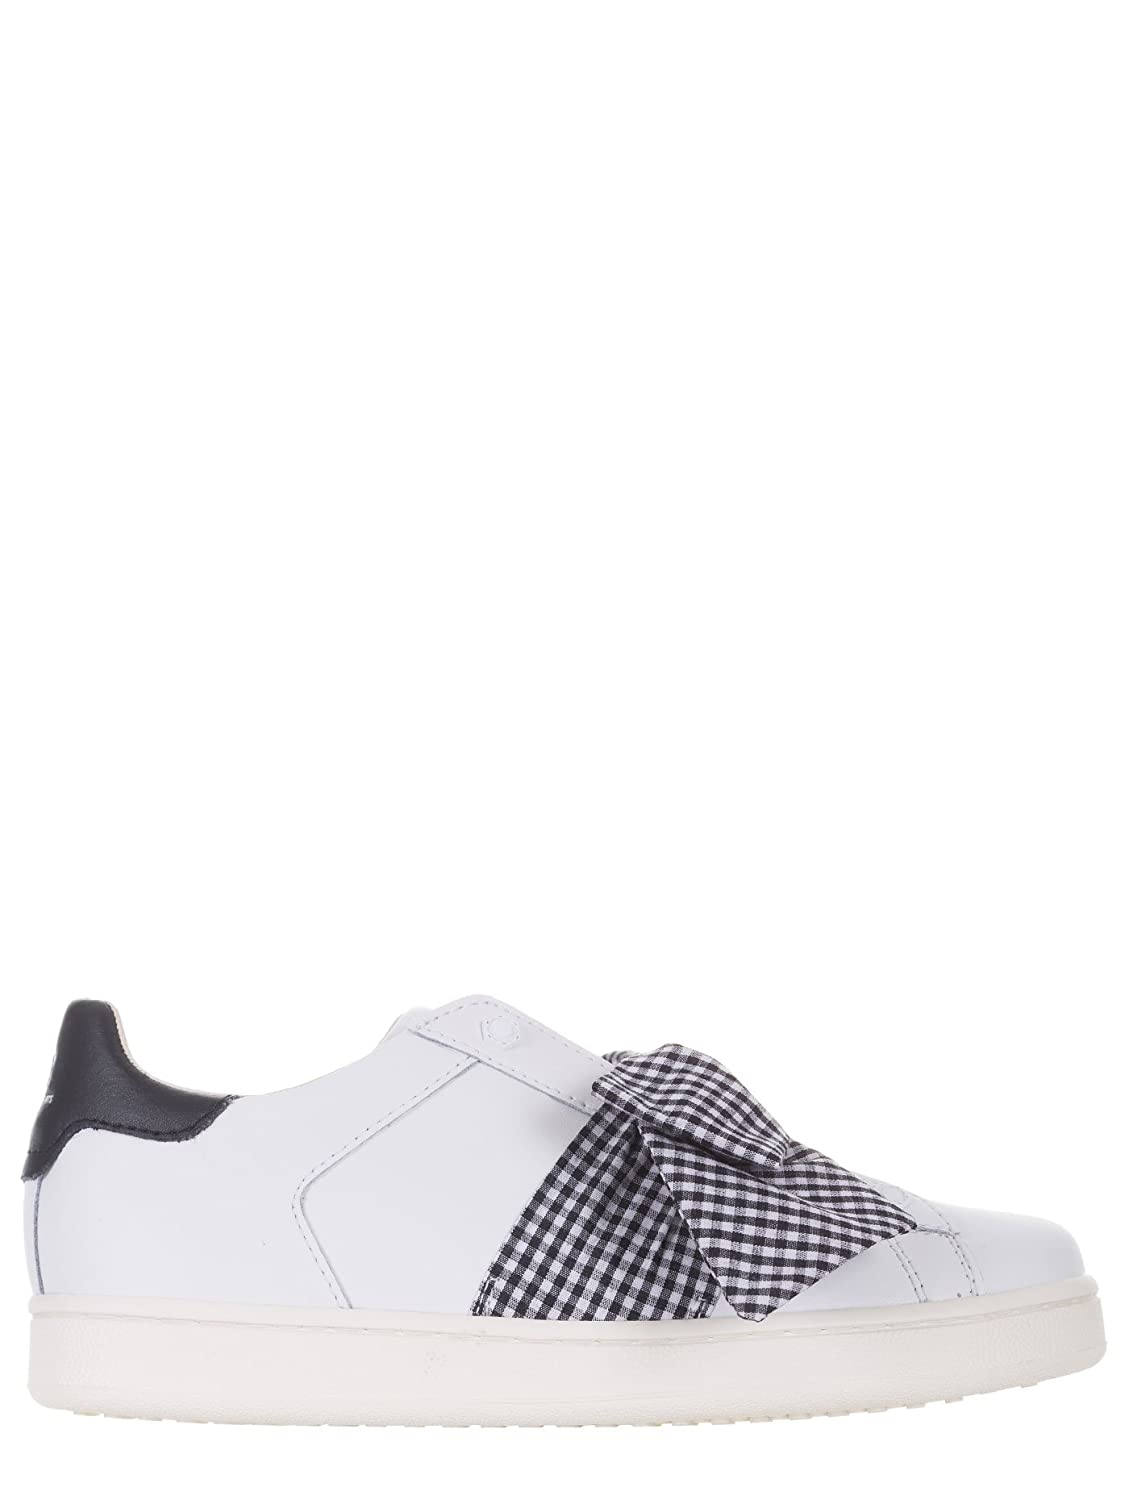 MOA Sneakers Donna, in Pelle, Bianco, Maxi Fiocco Frontale, M767  -